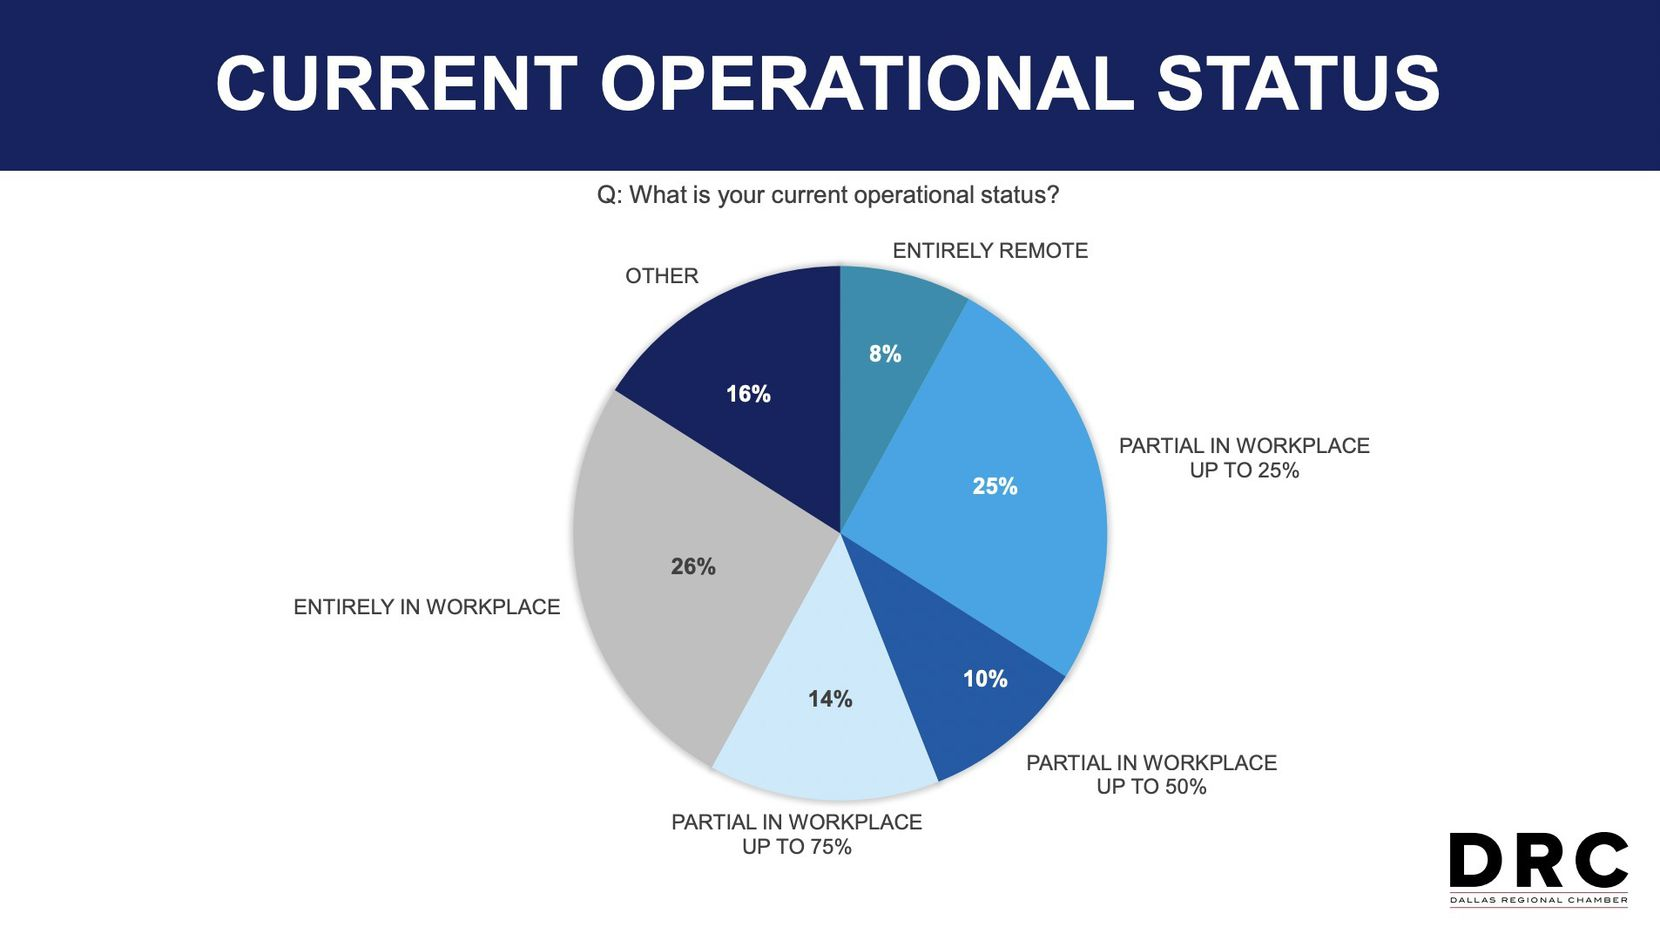 Only 8% of companies are currently operating with a fully remote workforce.